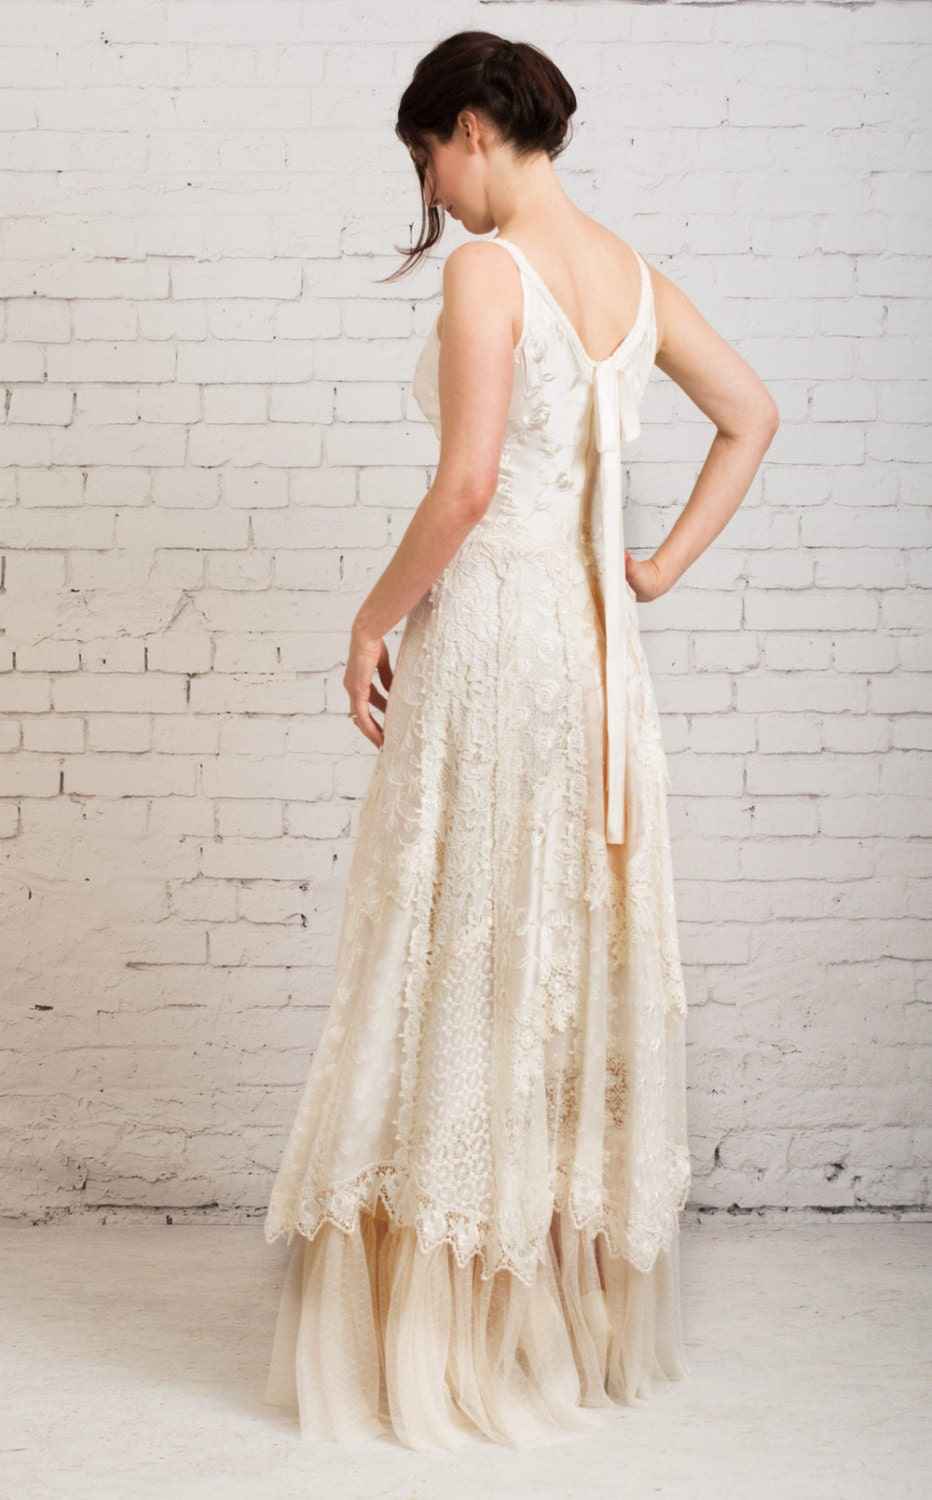 boho wedding dress casual wedding dress simple wedding